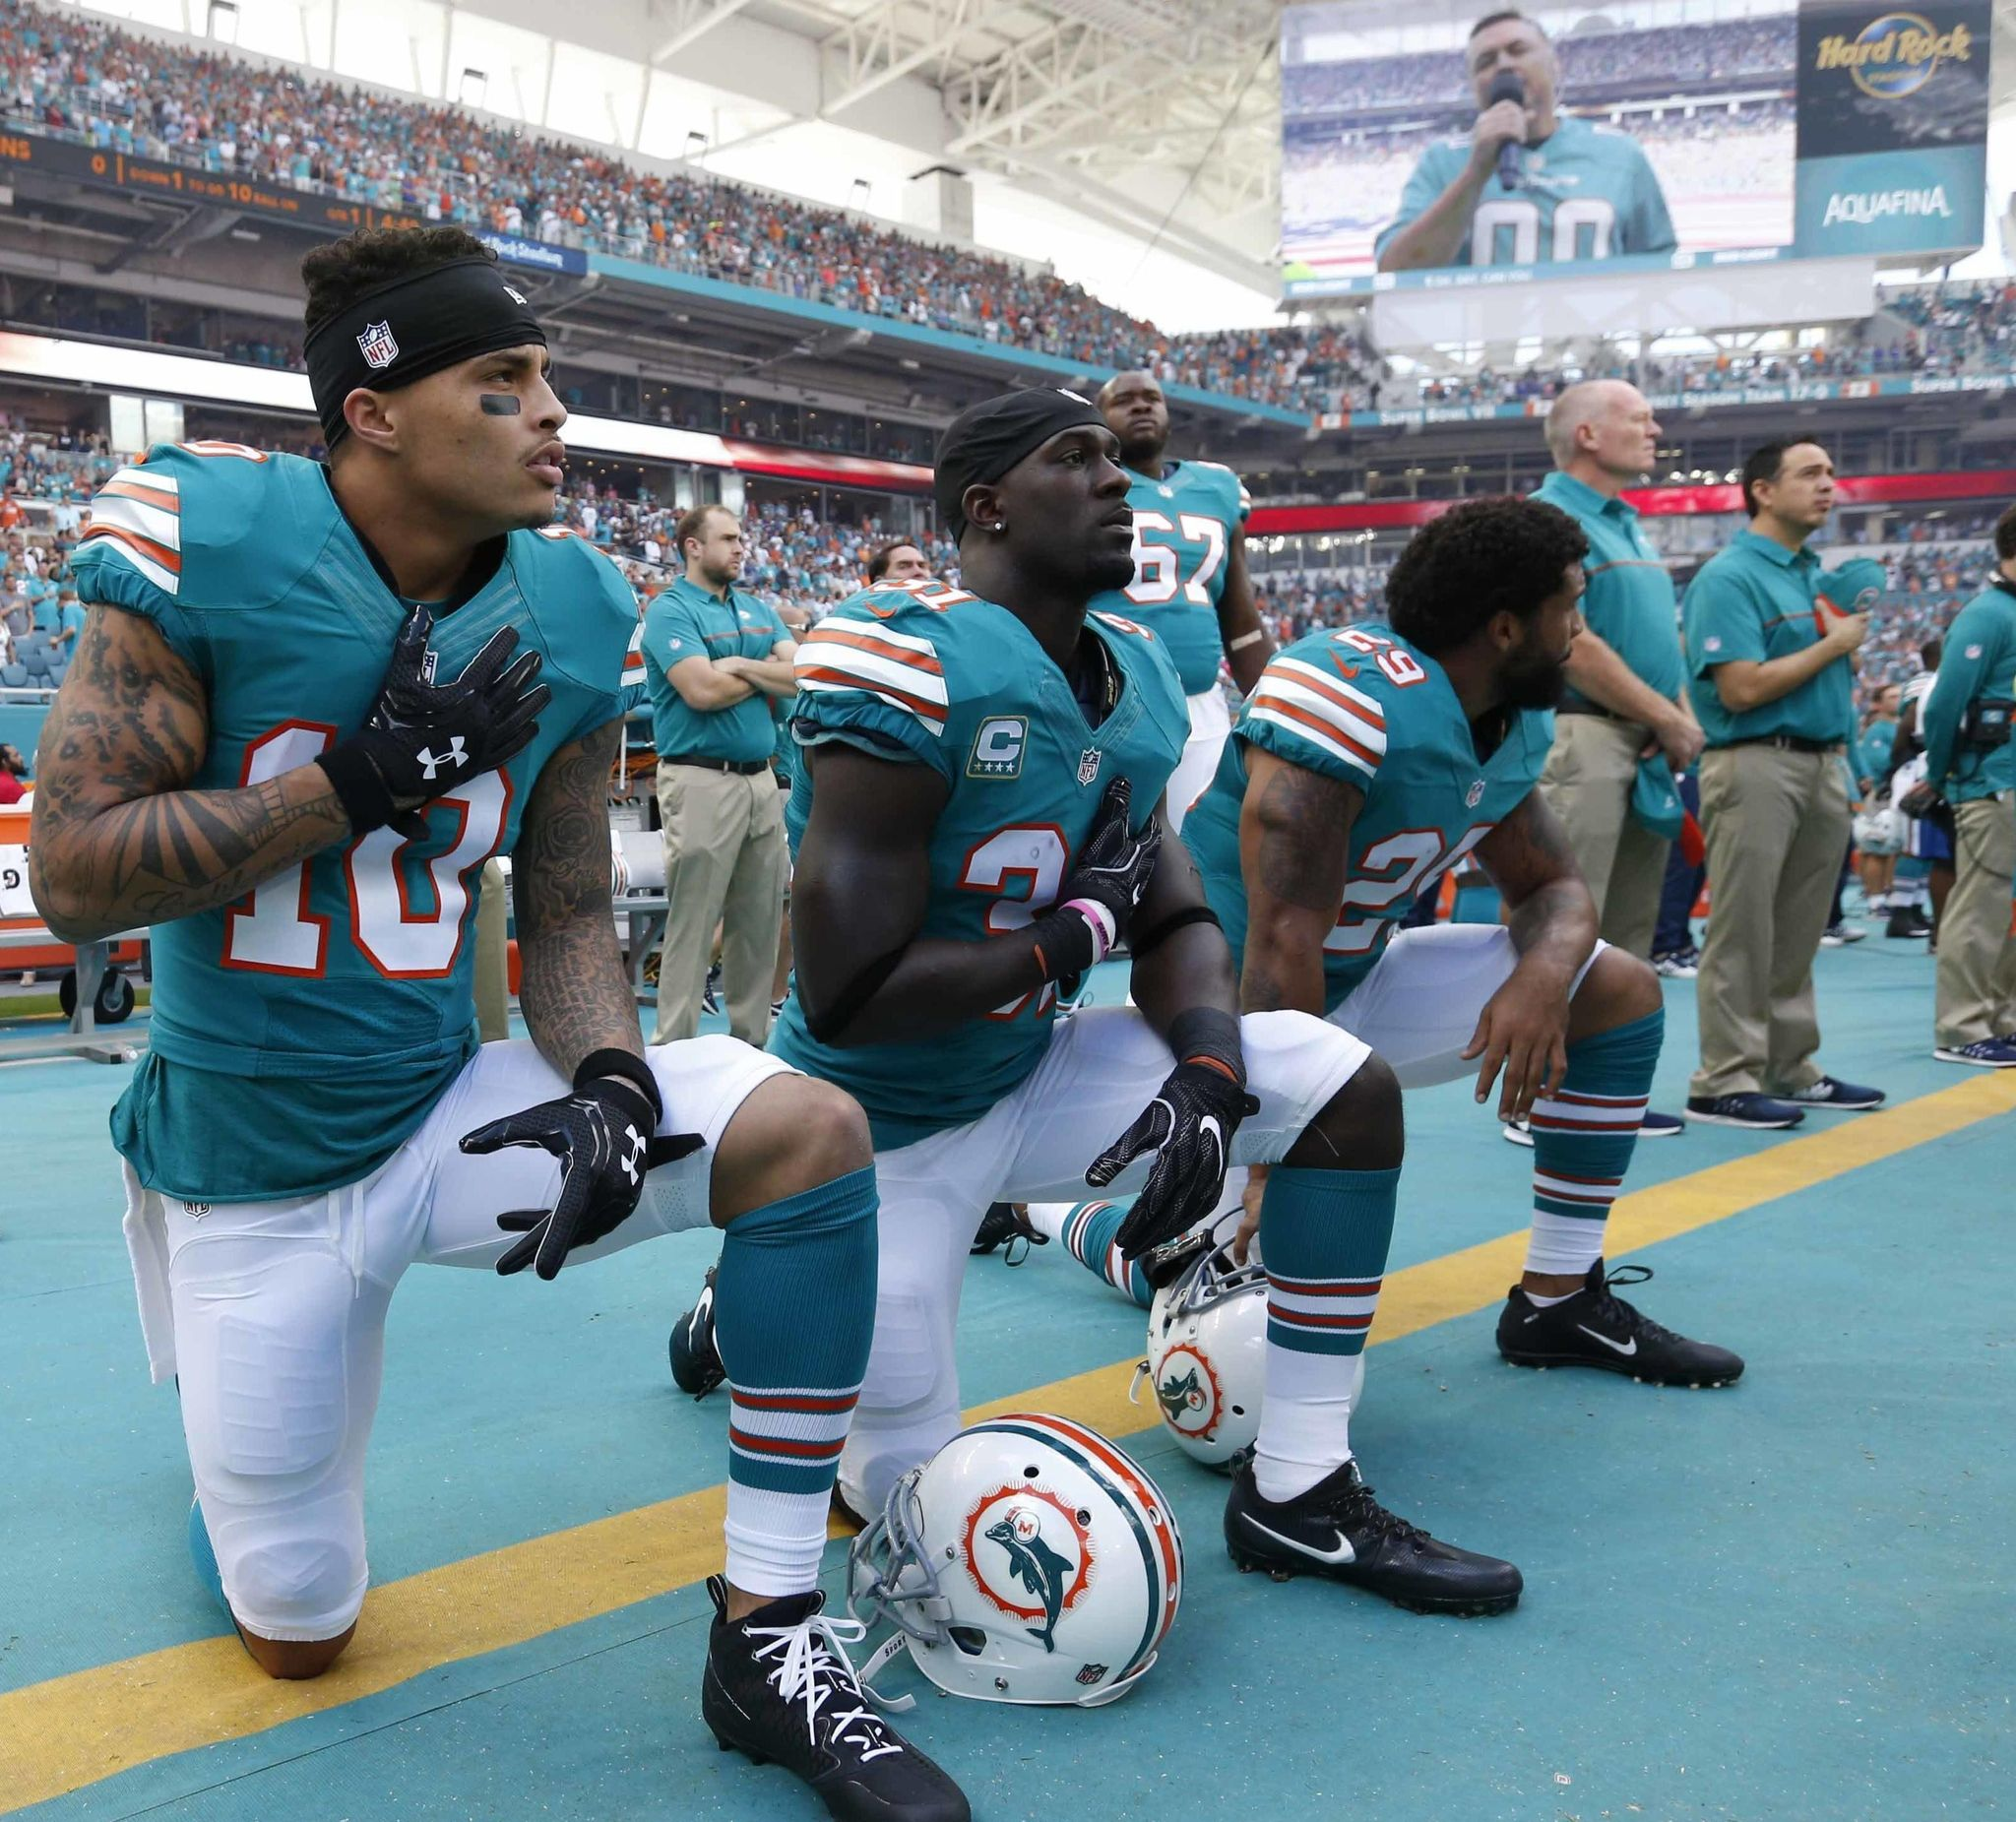 Anthem_policy-dolphins_football_44725_s2048x1851